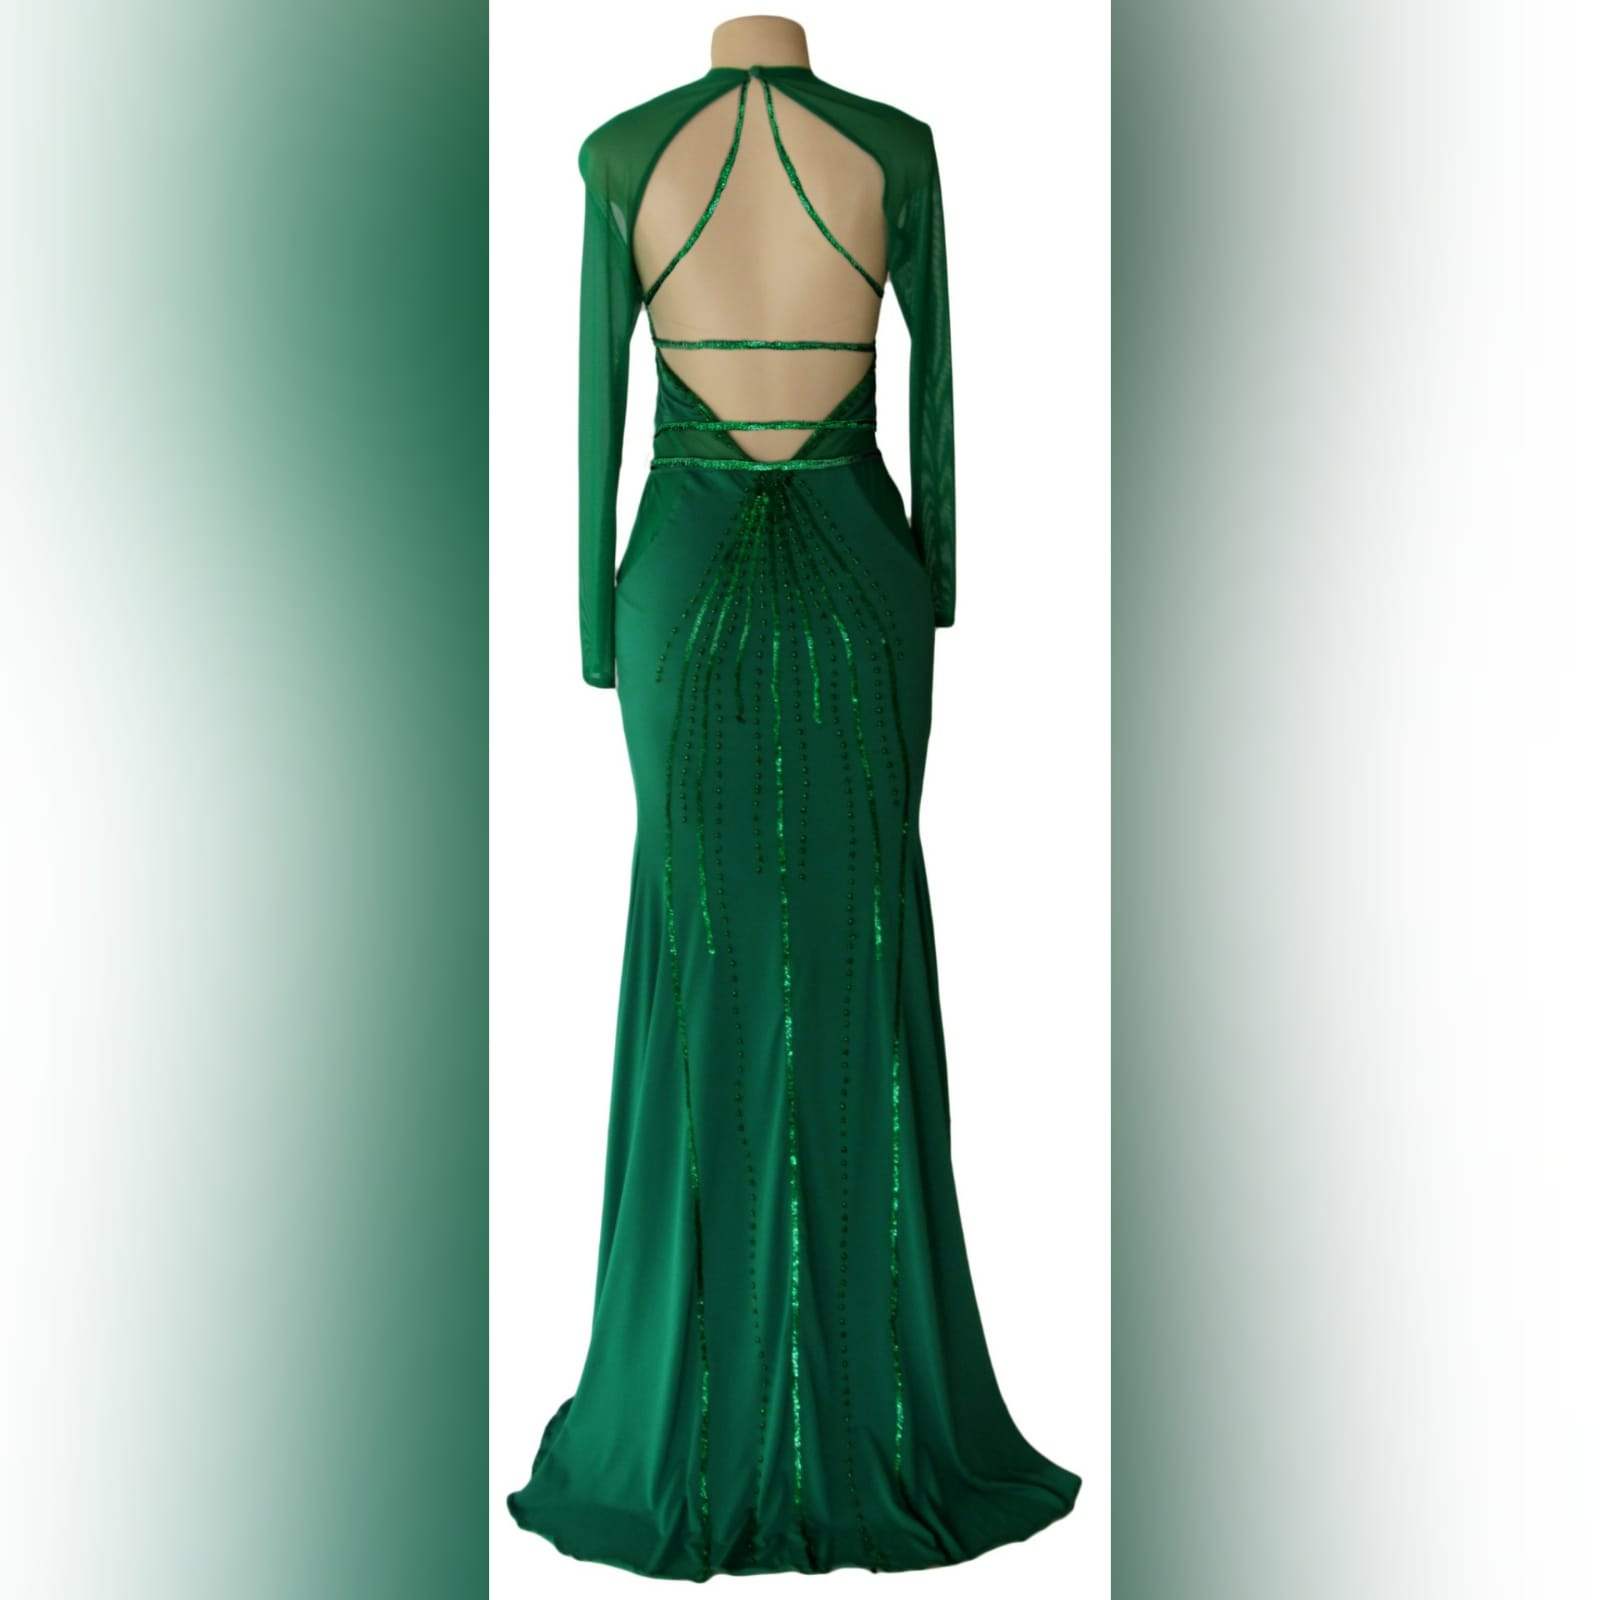 Green soft mermaid sexy unique evening dress 2 green soft mermaid sexy unique evening dress. Long sleeves, shoulders and leg panels in a slightly translucent fabric. A low open back detailed with sequins and beads.